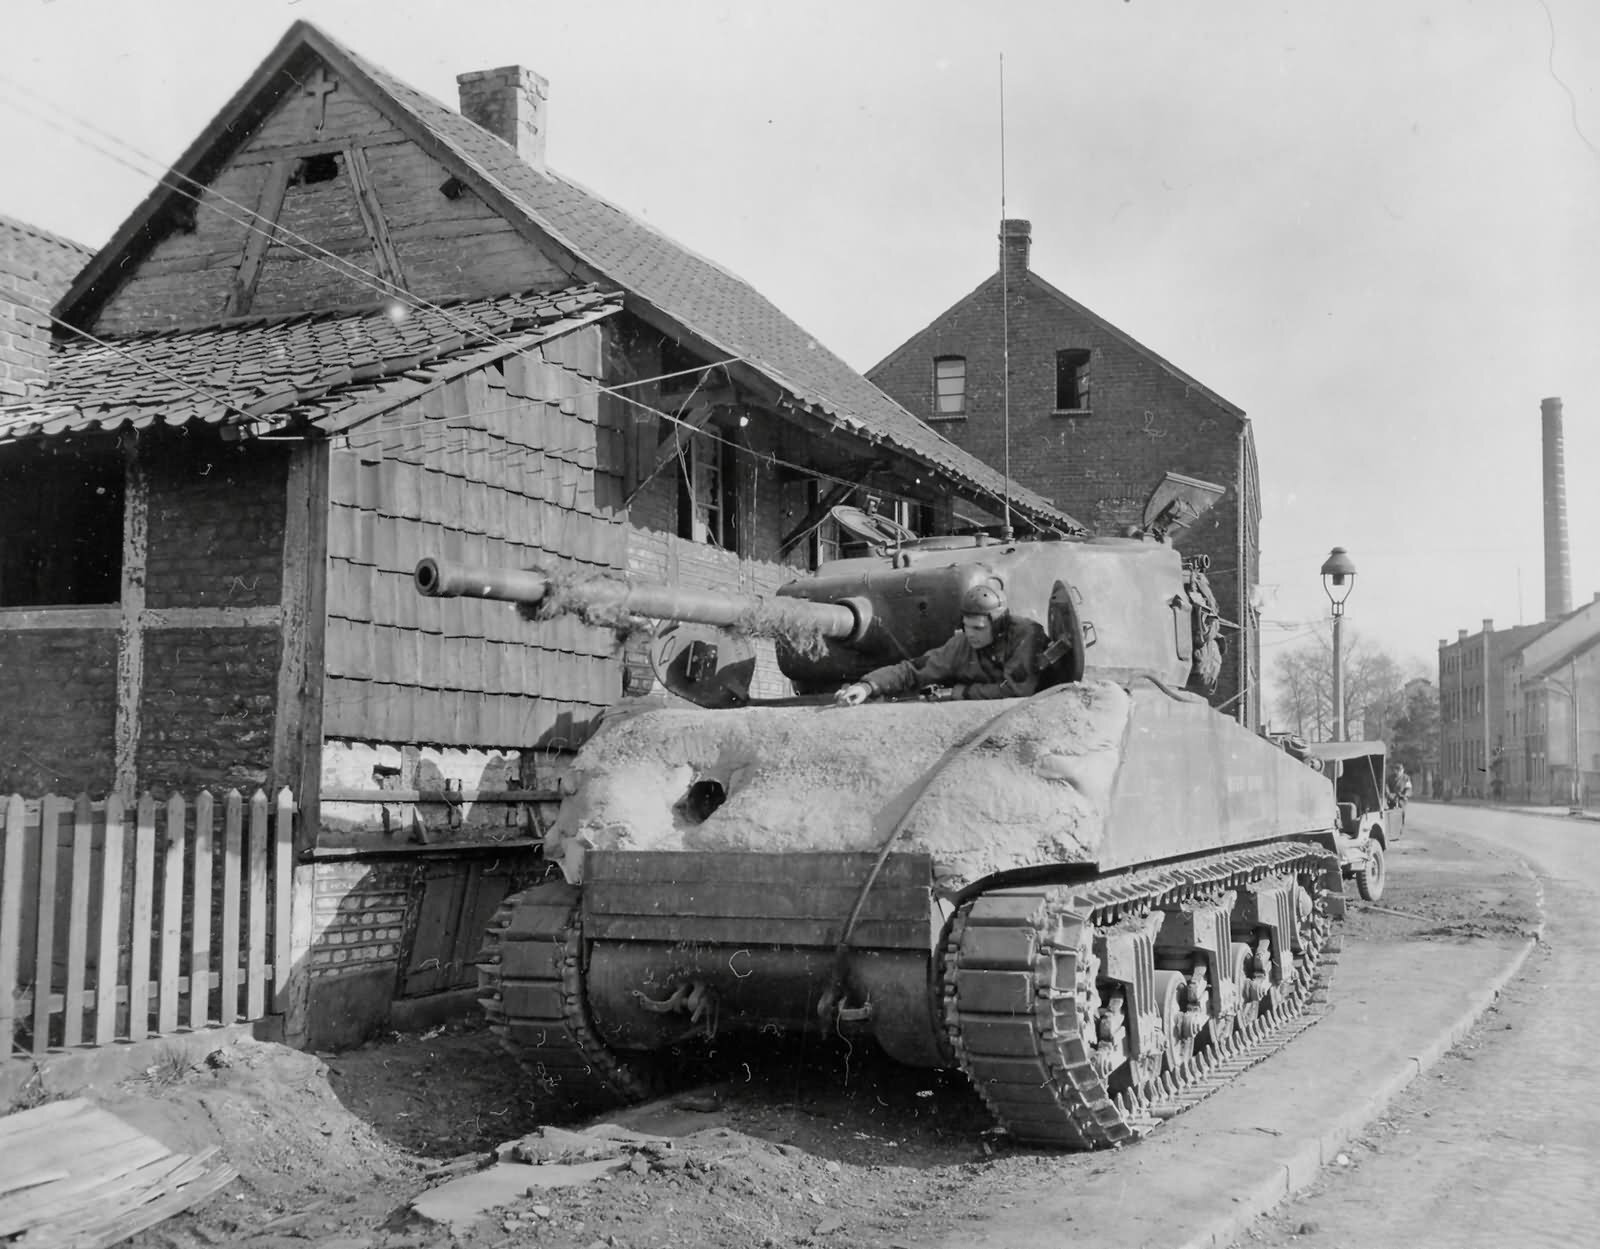 2AD M4 (76) Sherman with concrete armor. Gelsenkirchen, Germany. 19 Mar 1945